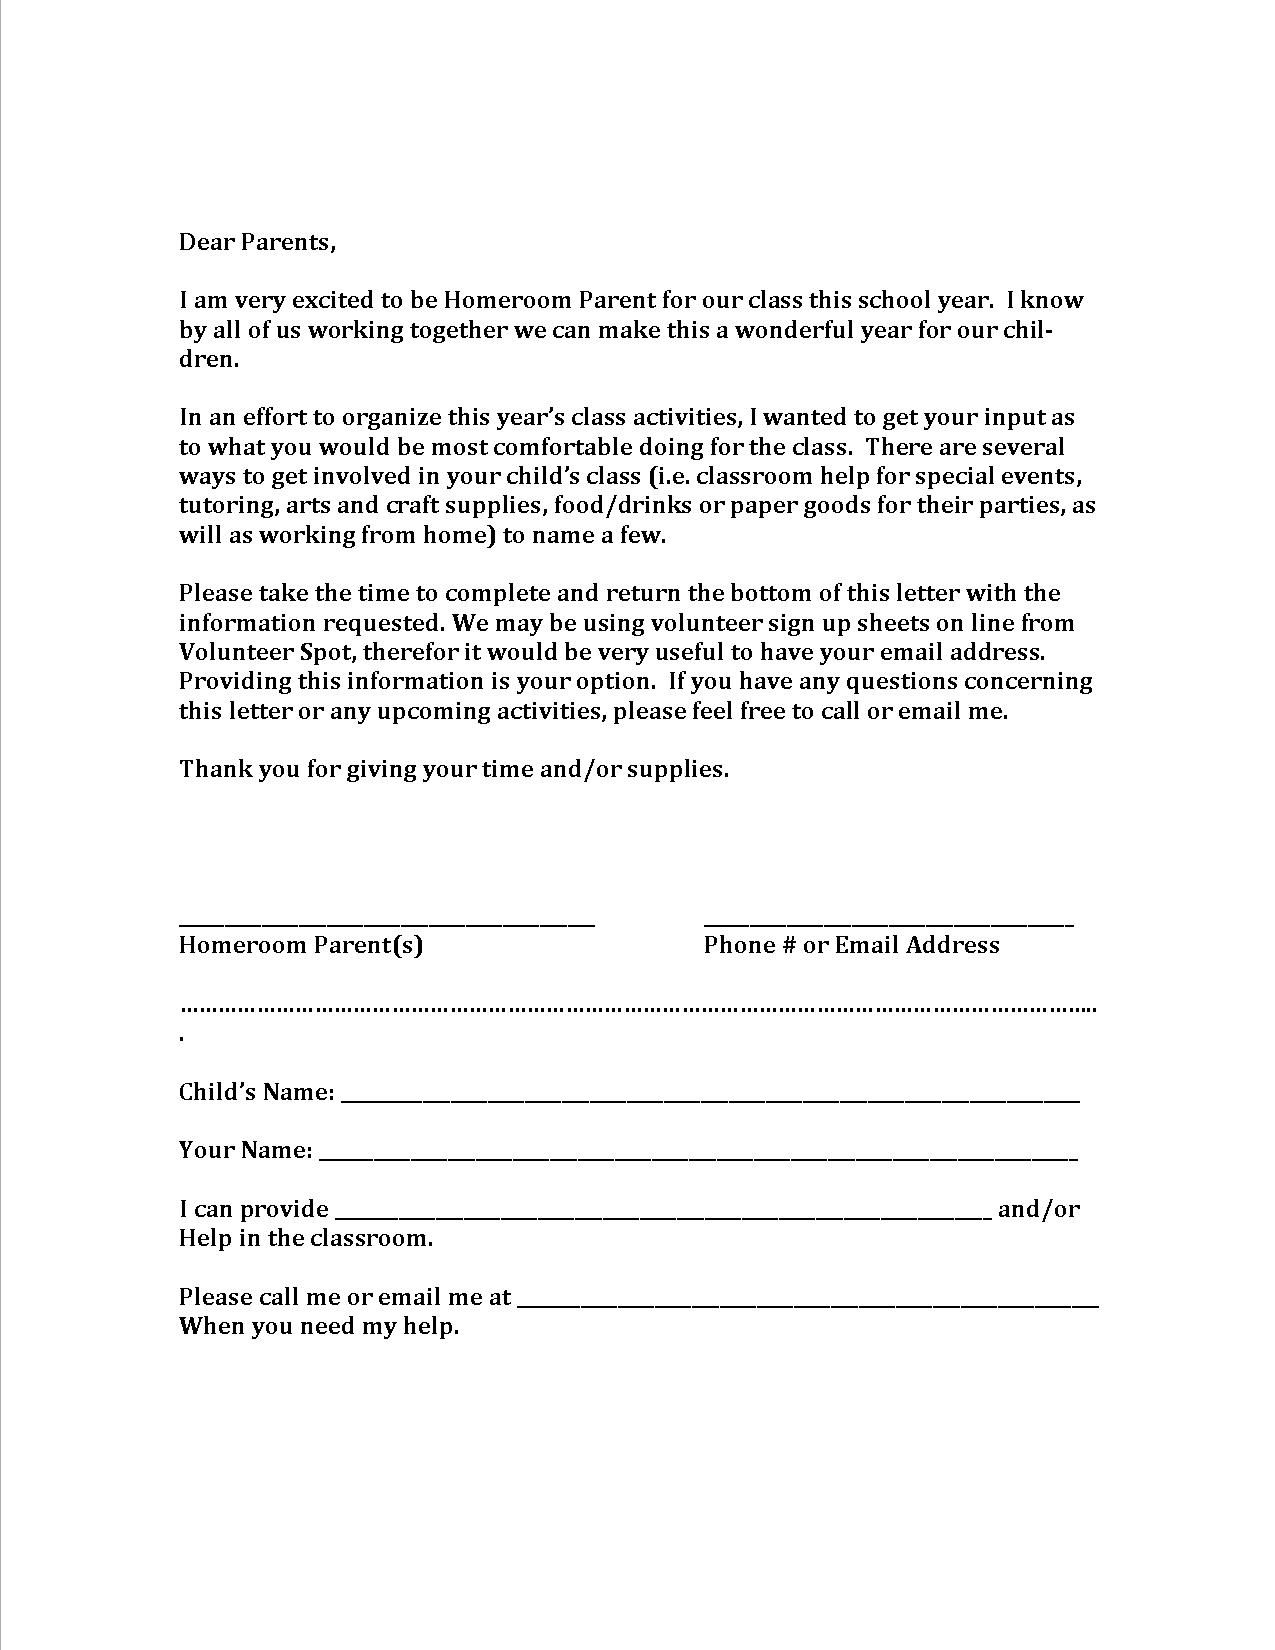 Volunteer letter template hdvolunteer letter template for How to write a cover letter for volunteer work